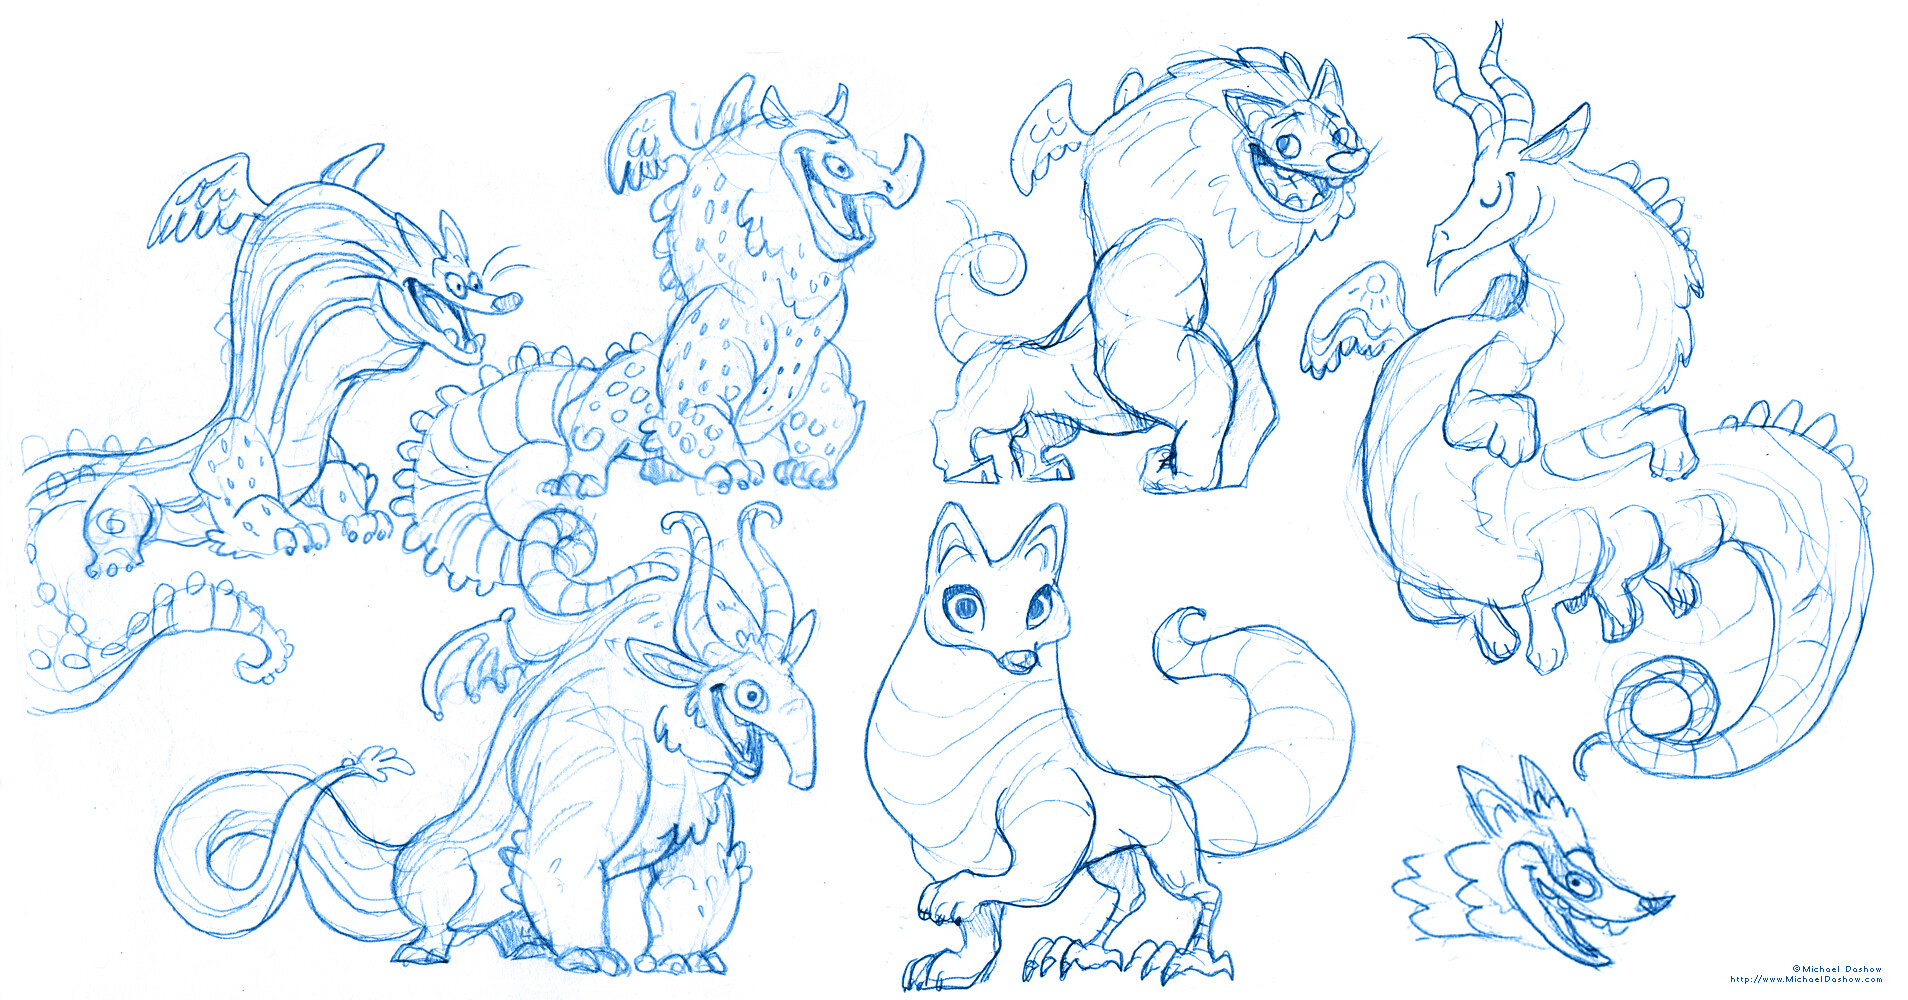 Michael dashow alebrijes 02 sketch page 6